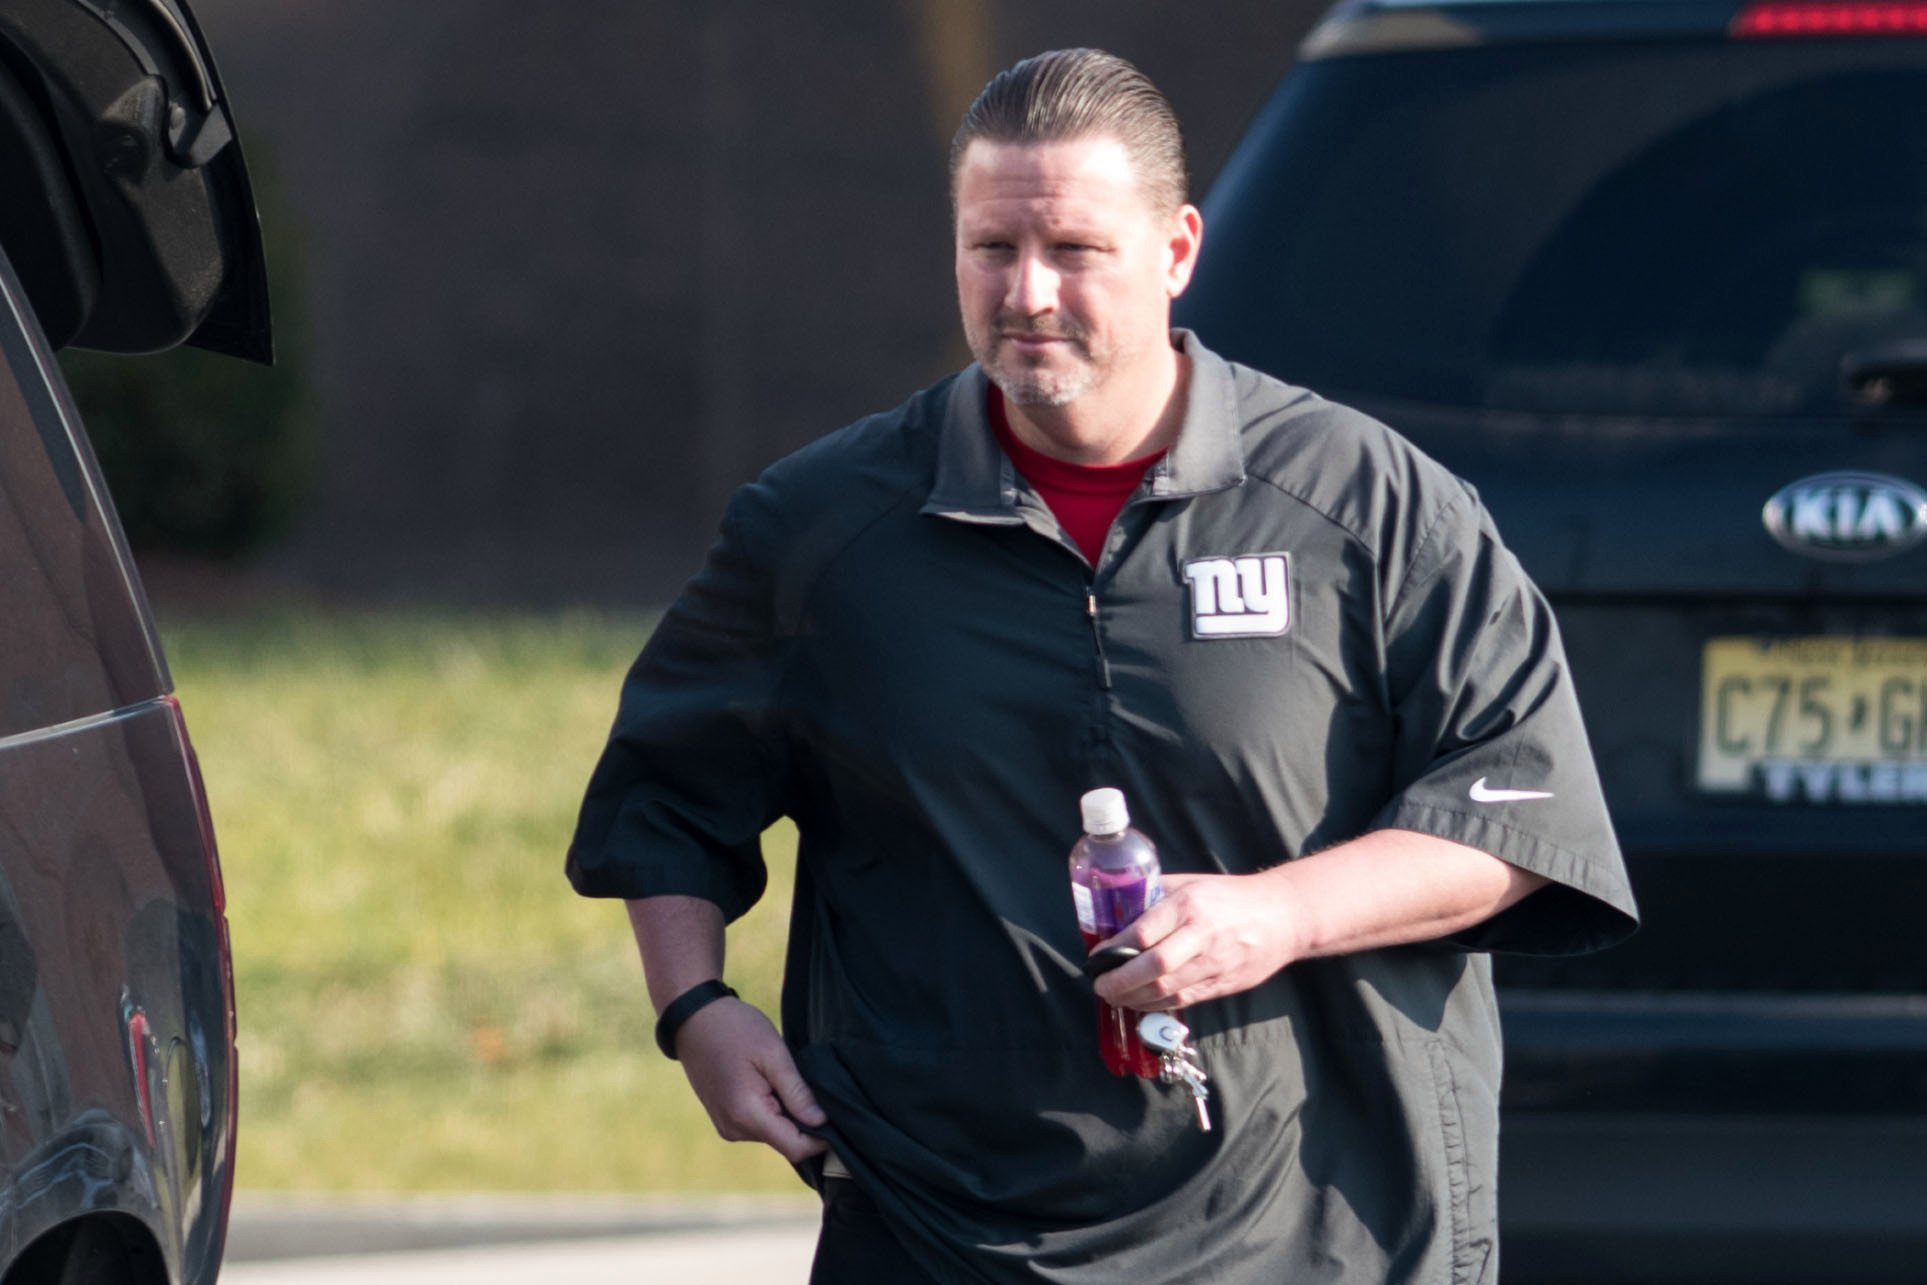 Ben McAdoo may have to settle for next NFL job